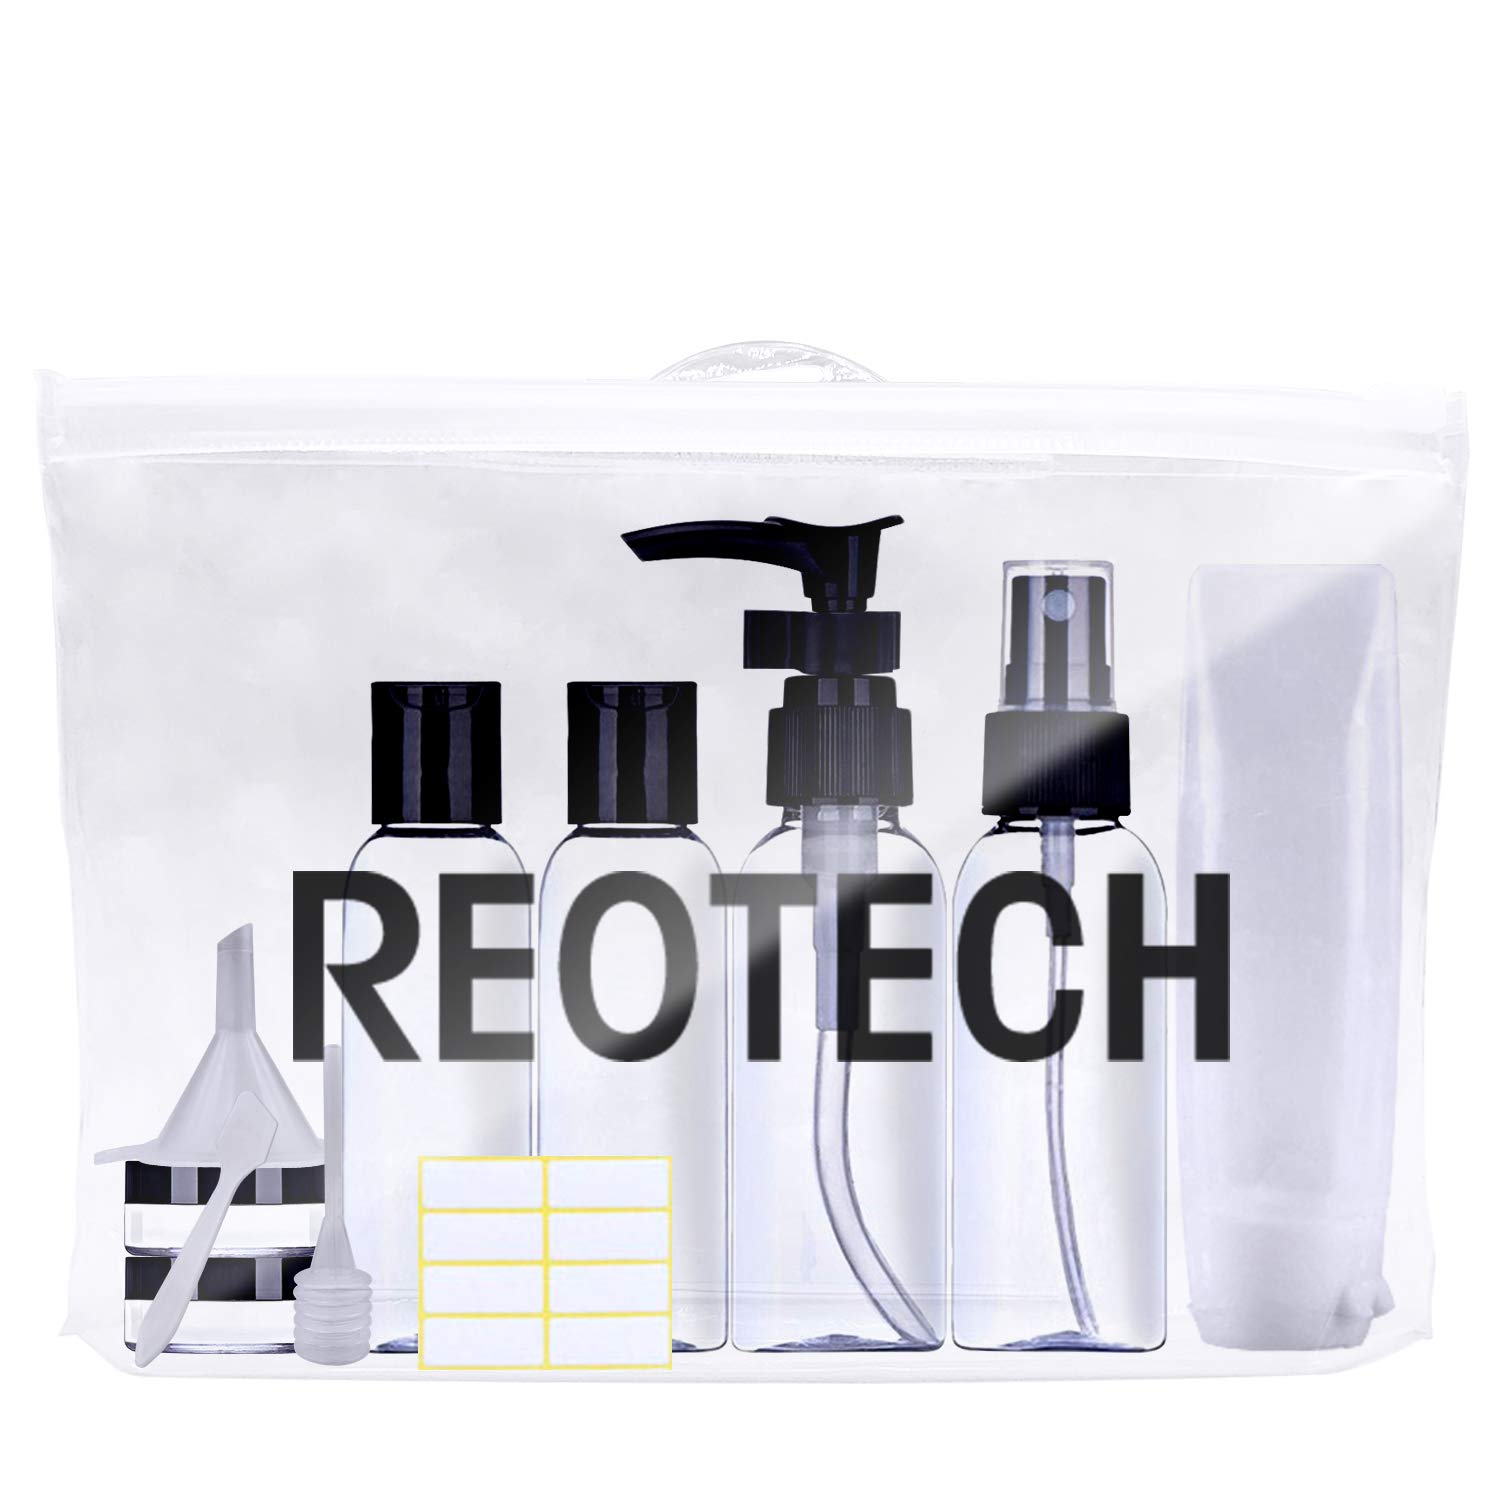 Travel Bottles TSA Approved Leak-Proof - REOTECH Toiletry Bag Clear Quart Size Travel Accessories, Refillable Silicone Travel Containers for Liquids 3-1-1 Carry-On Luggage Airplane Compliant